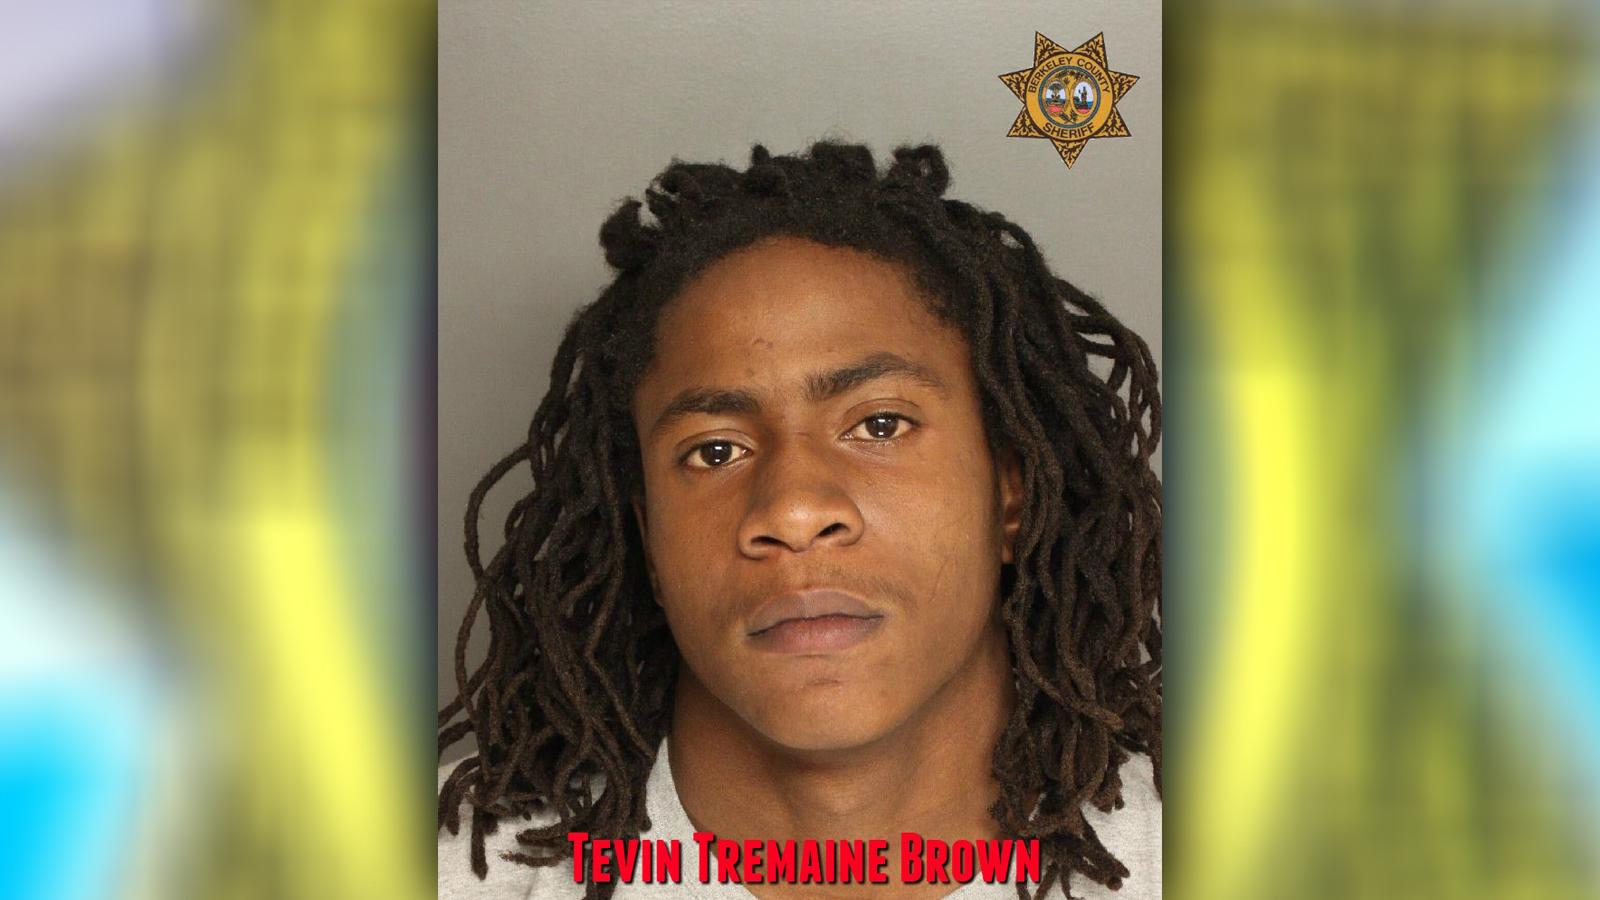 Tevin Tremaine Brown (BCSO)